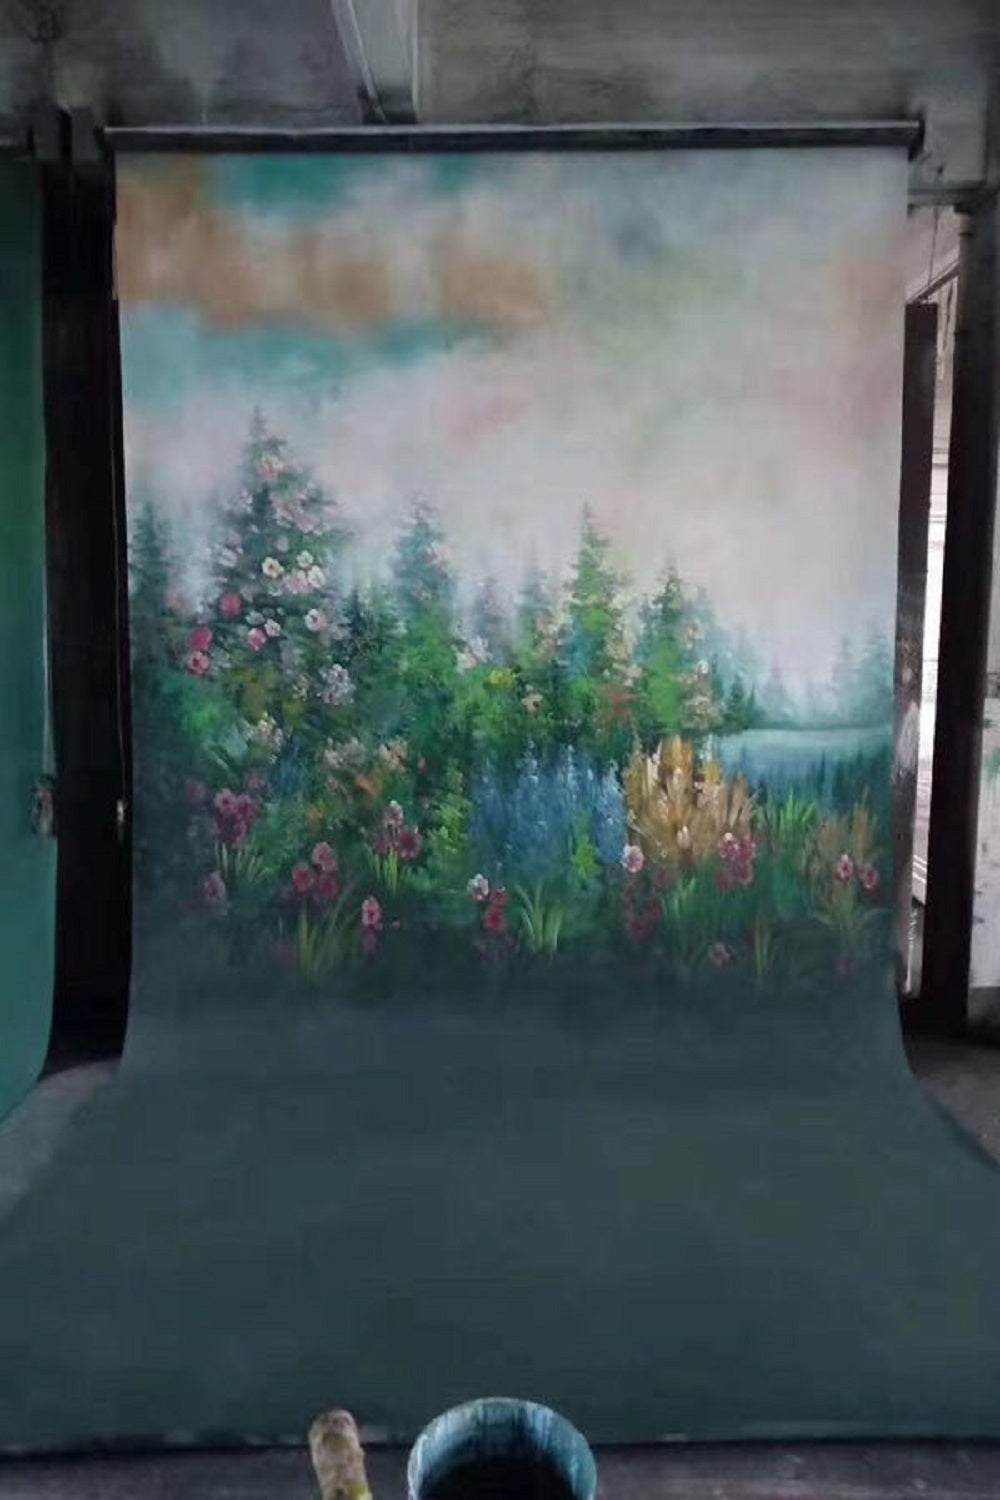 Clotstudio Fine Art Flower and Forest Spray Painted Backdrop Canvas Backdrop #clot81-Mid Texture-CLOT STUDIO-custom hand painted canvas studio photo backdrops handmade photography backgrounds